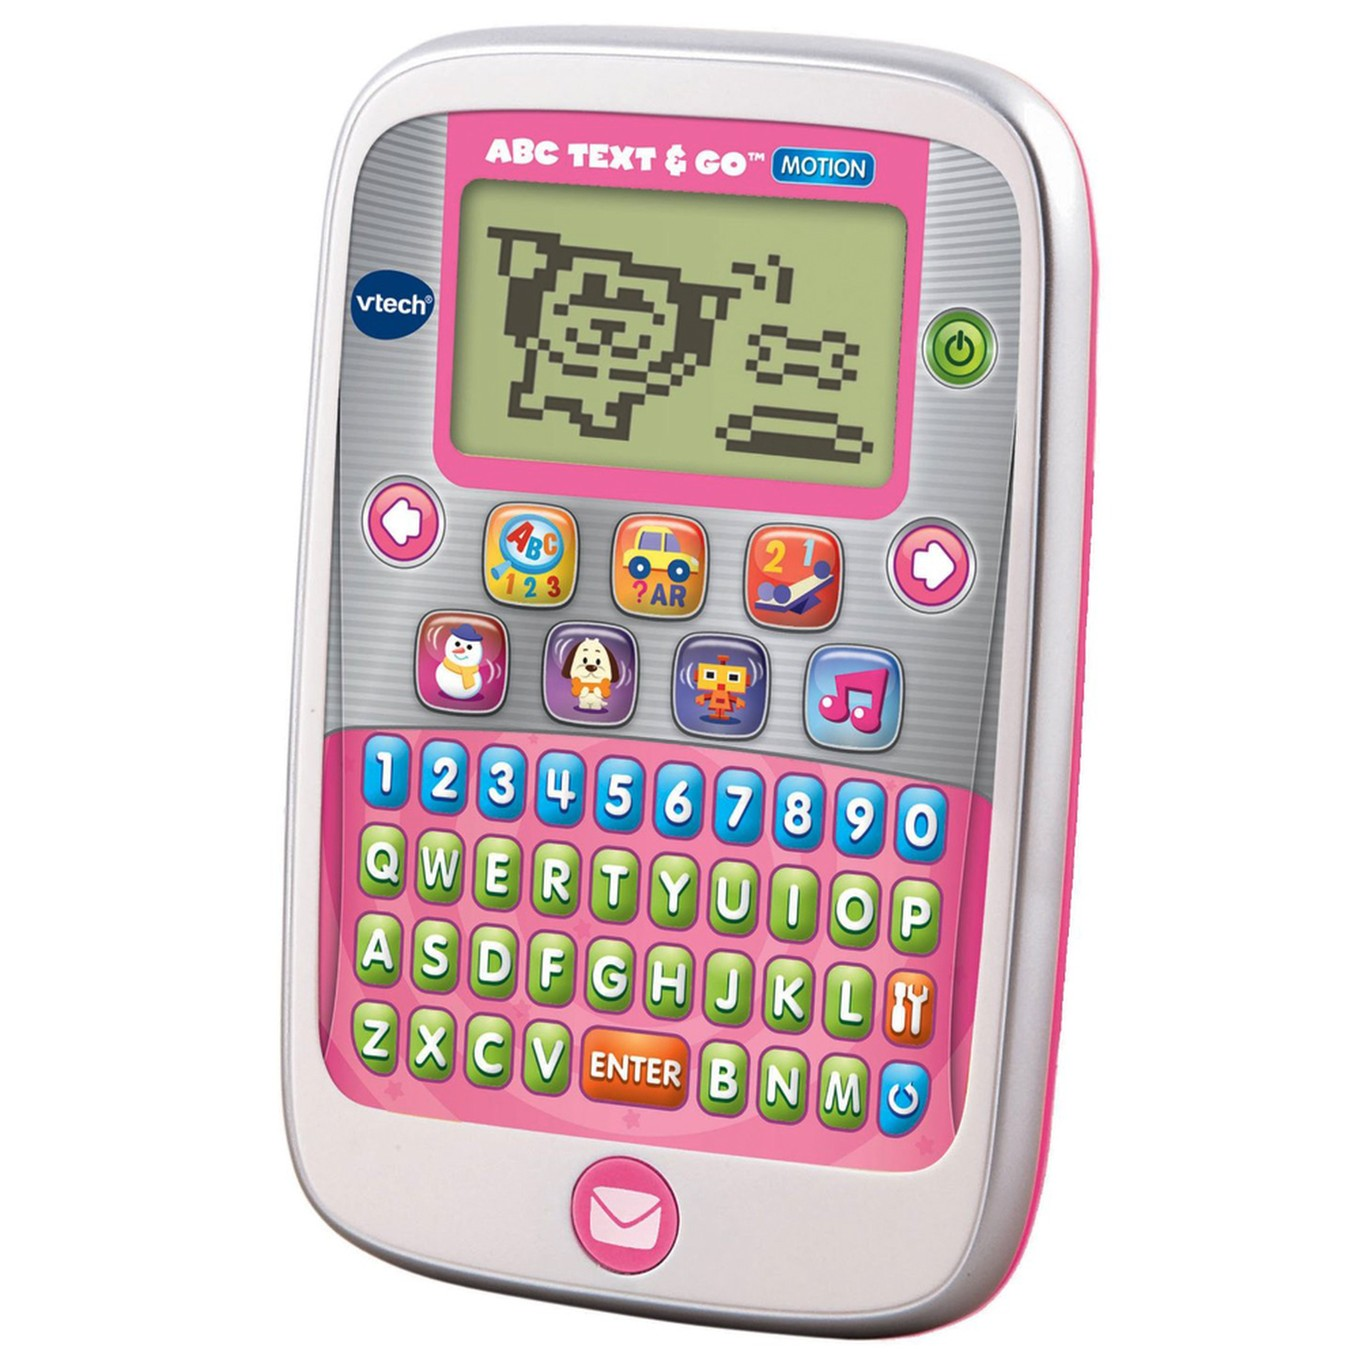 Abc Detailing Home: ABC Text & Go Motion Pink